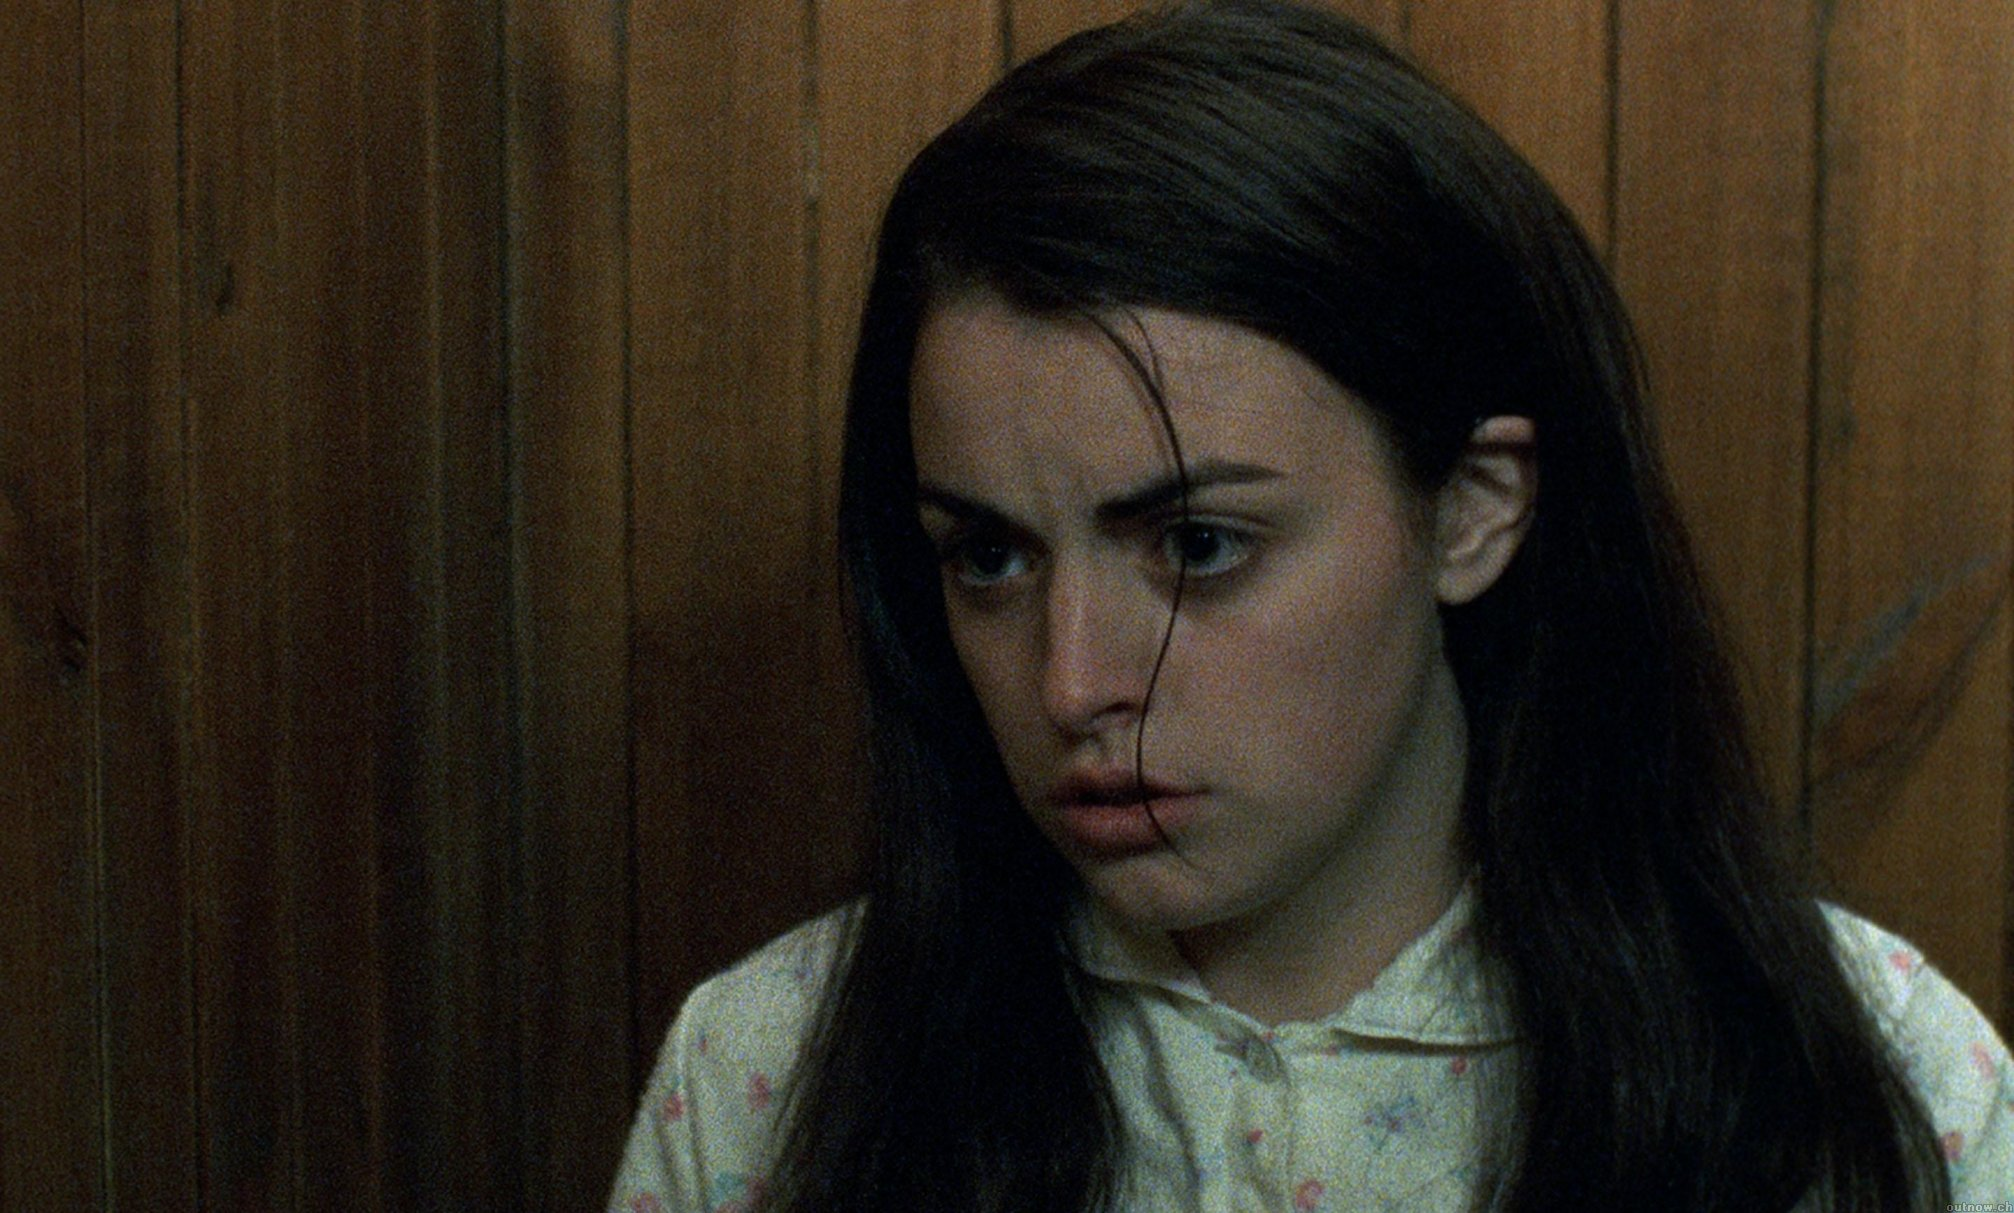 a review of the film magdalene laundries For a film about mary magdalene, there is sadly too much here about jesus christ and god's design and not enough about herself, as she becomes little more than a passive spectator in a story.